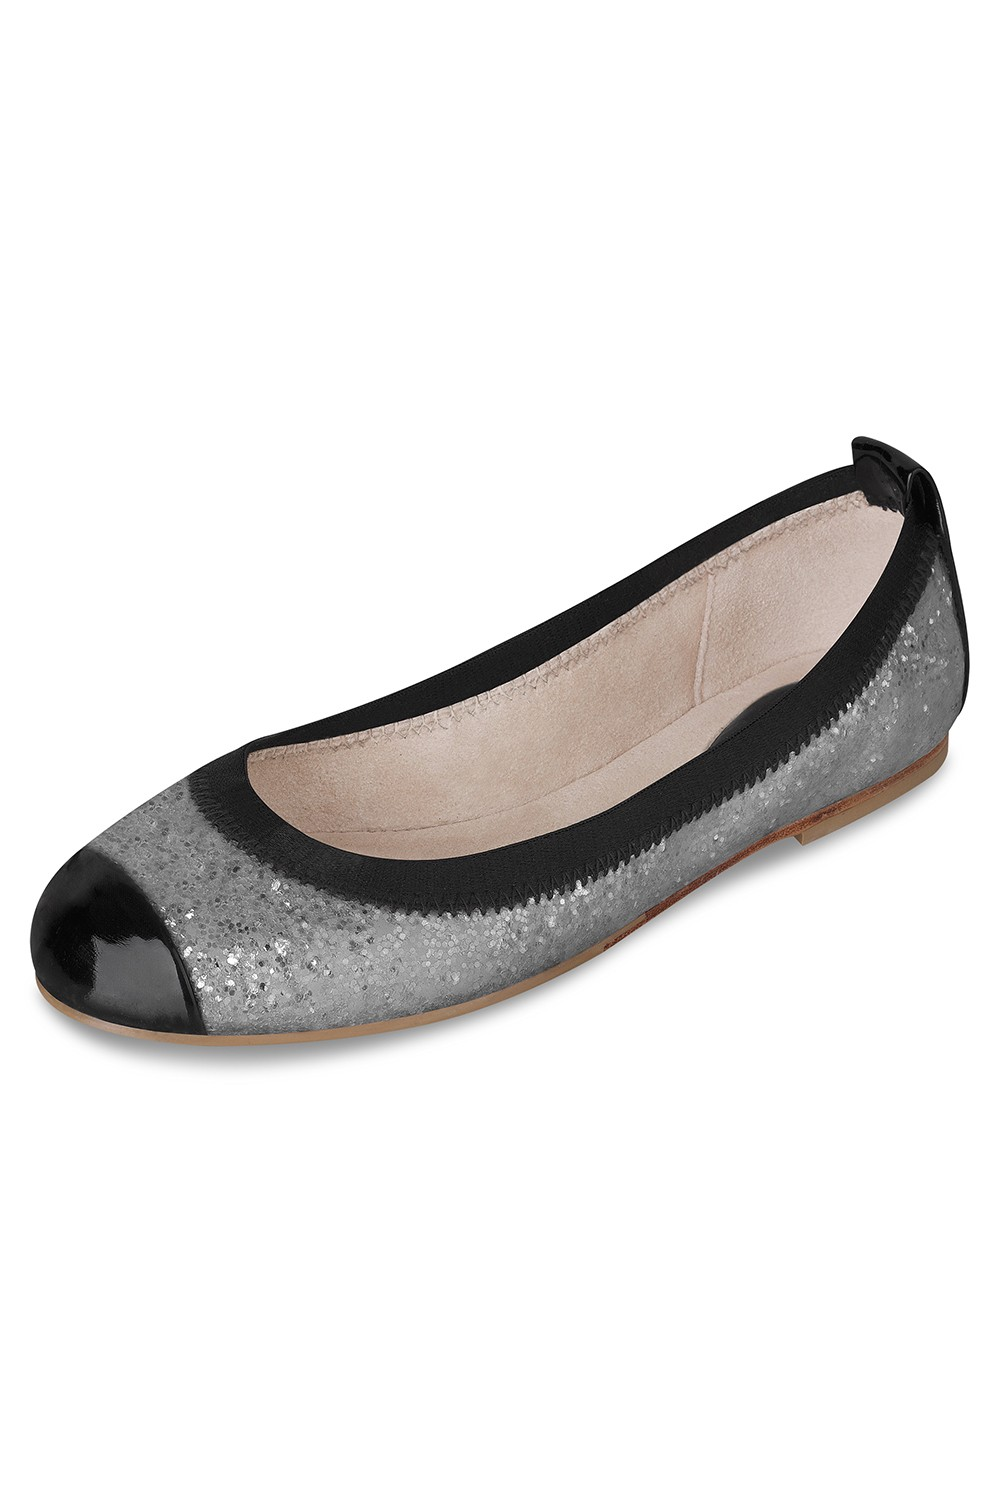 Elettra - Fur Lining Girls Girls Fashion Shoes